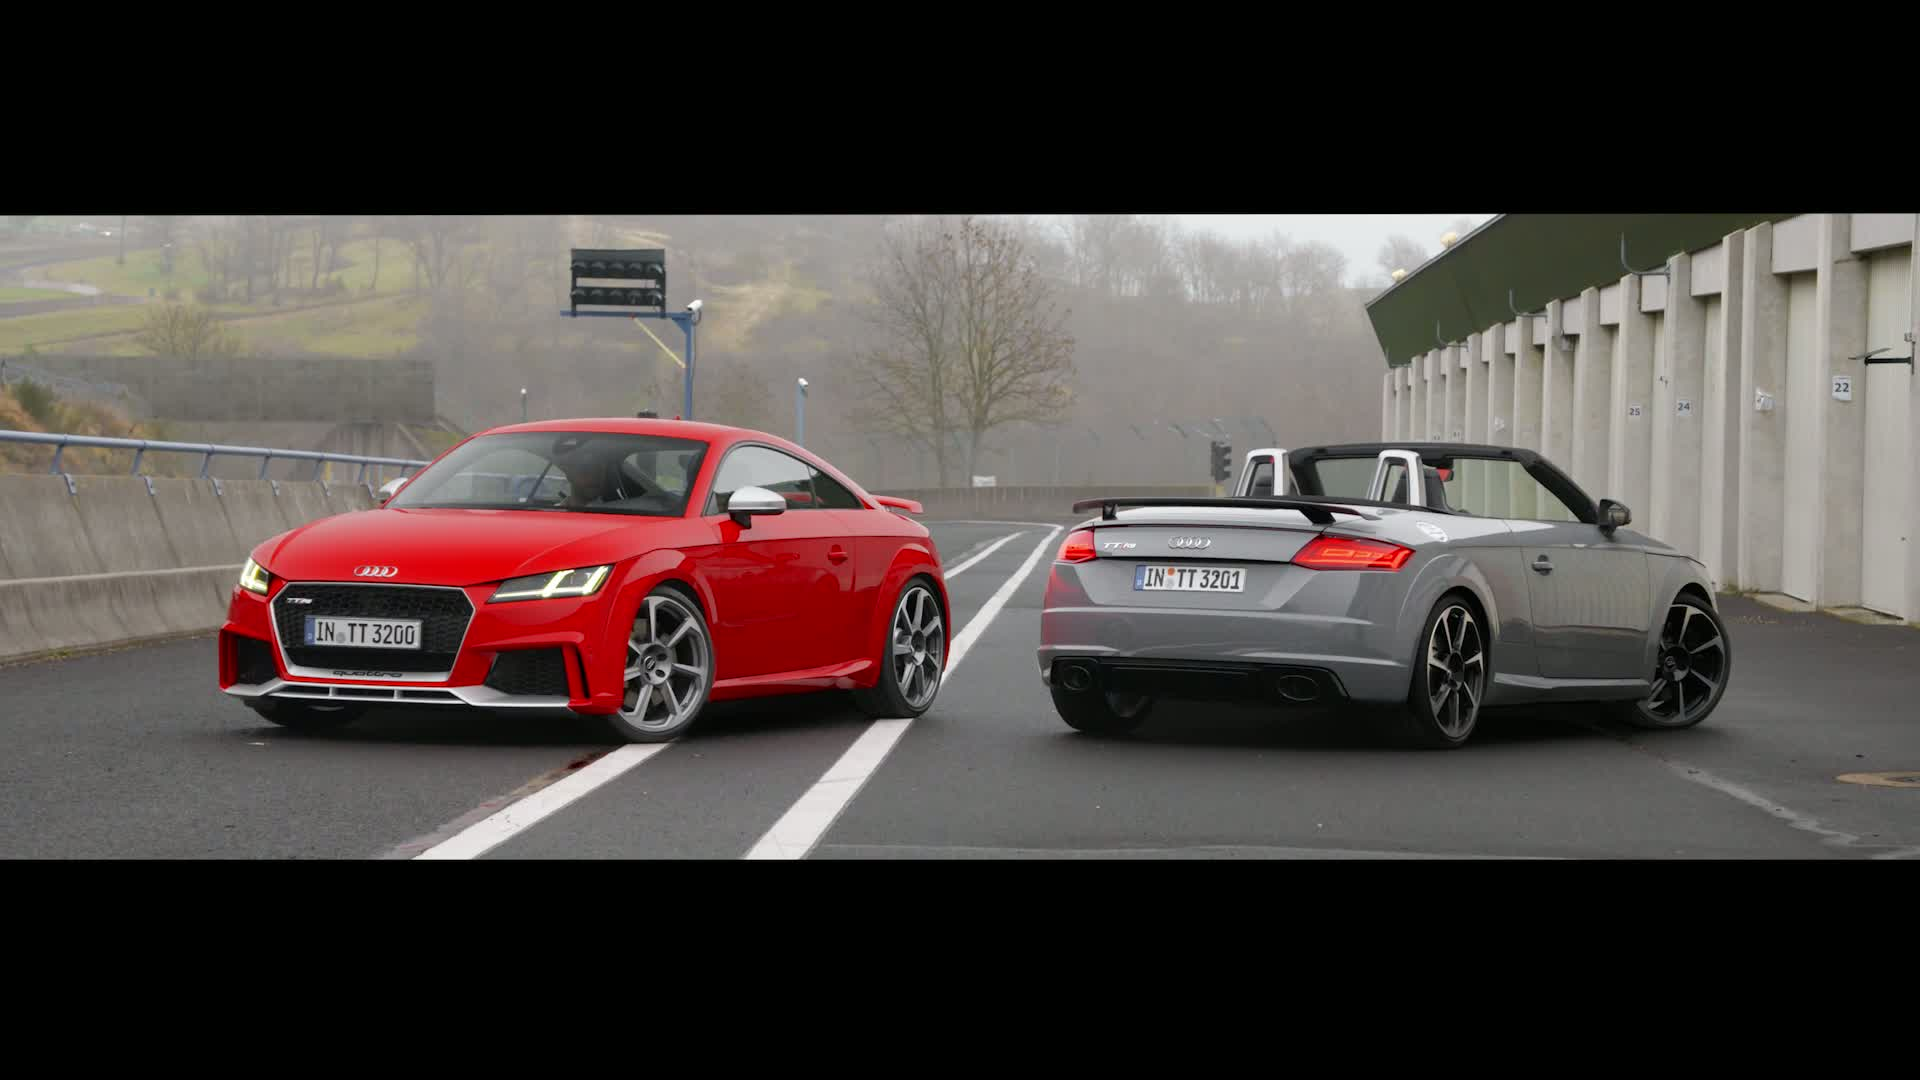 TT RS Coupé and TT RS Roadster - driving pleasure at the highest level